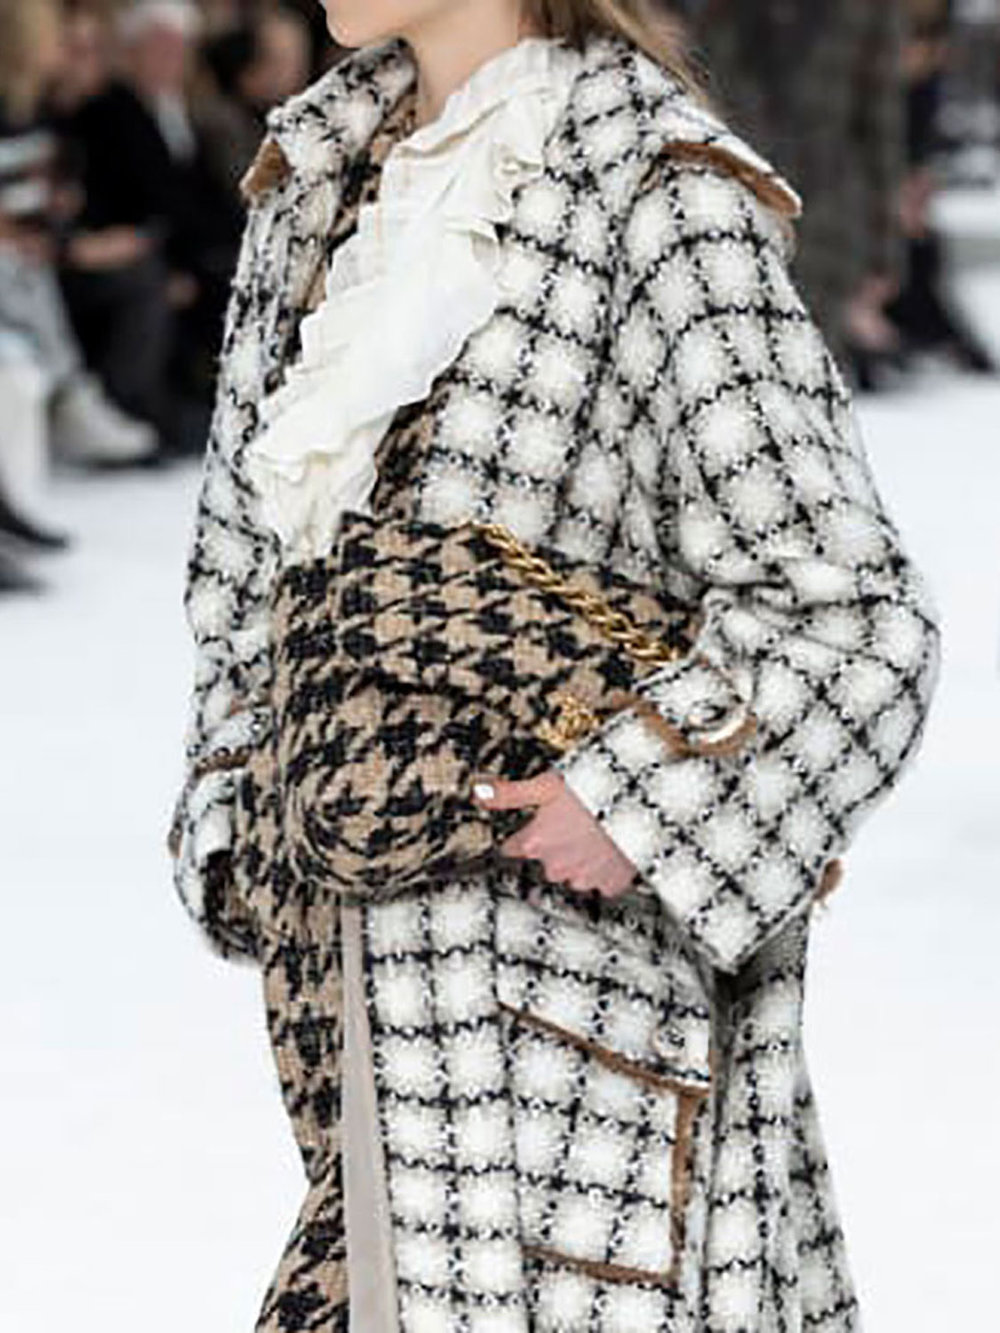 Tidlrs_Live_Luxury_CHANEL_Retrospective_4.2.jpg